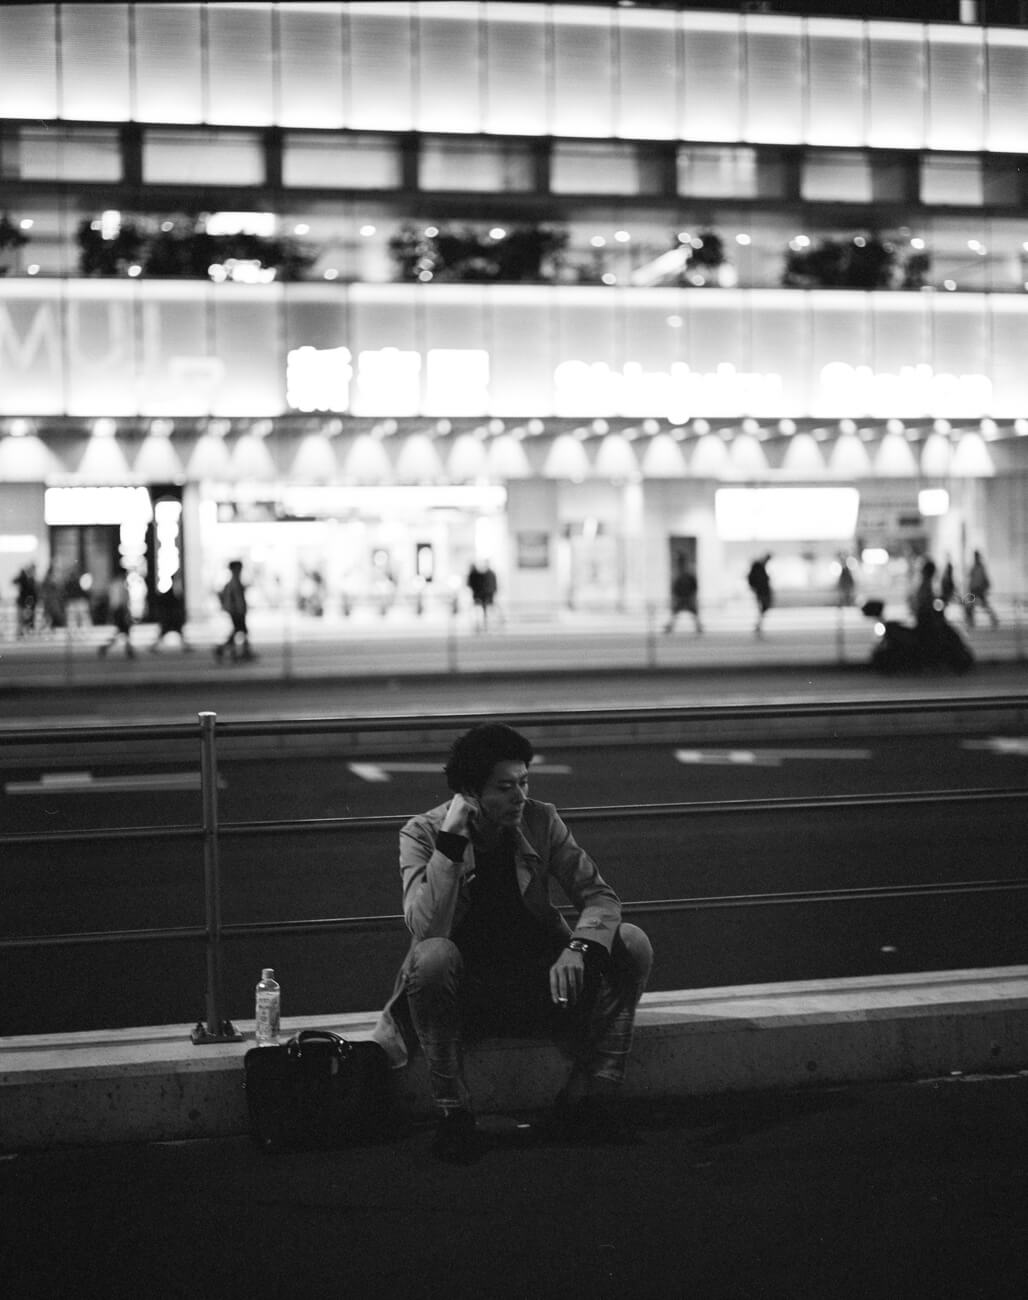 Analog-film-review-kodak-tri-x-trix-400-tahusa-bw-black-white-negative-DDX-Pentax-67-6x7-105mm-2.4-tokyo-japan-night-street